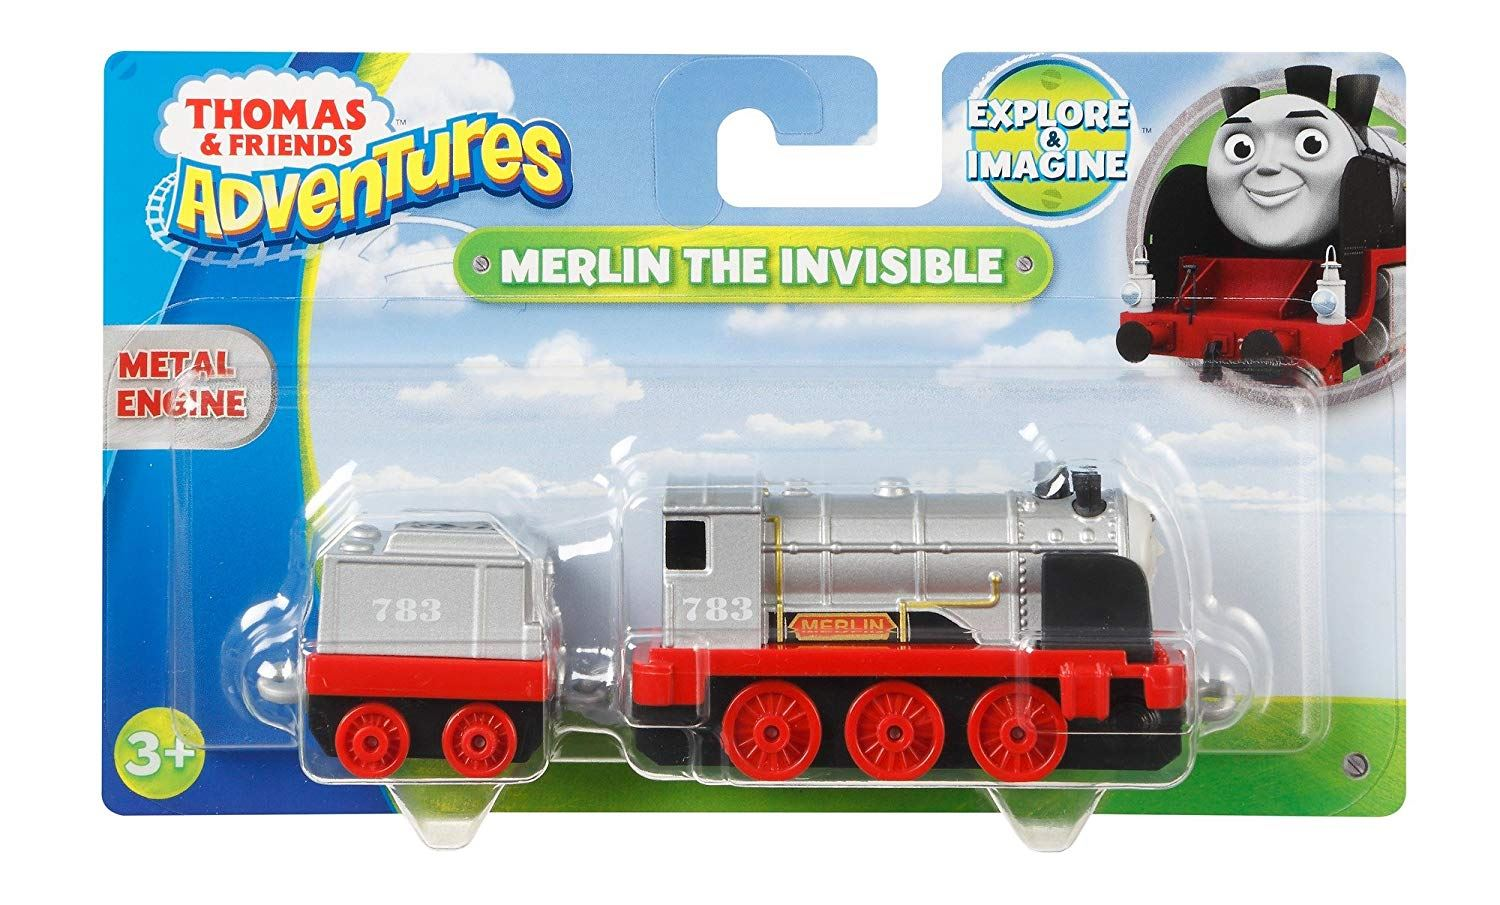 Thomas-amp-Friends-Adventures-Ferdinand-lexi-Shane-Dash-Huge-Bill-Trains Indexbild 35